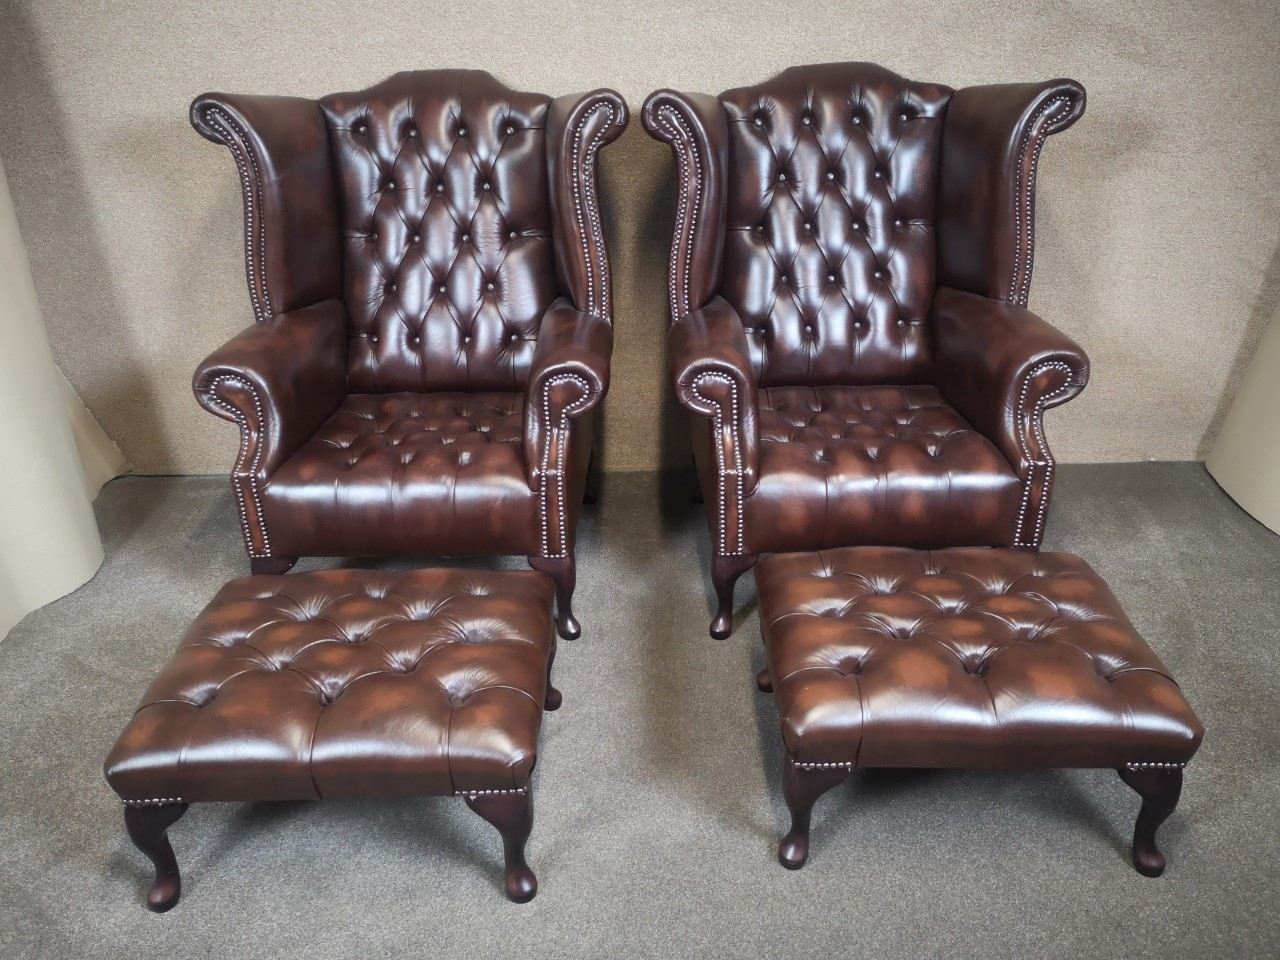 Pair of brown leather chairs with matching stools(stools)画像